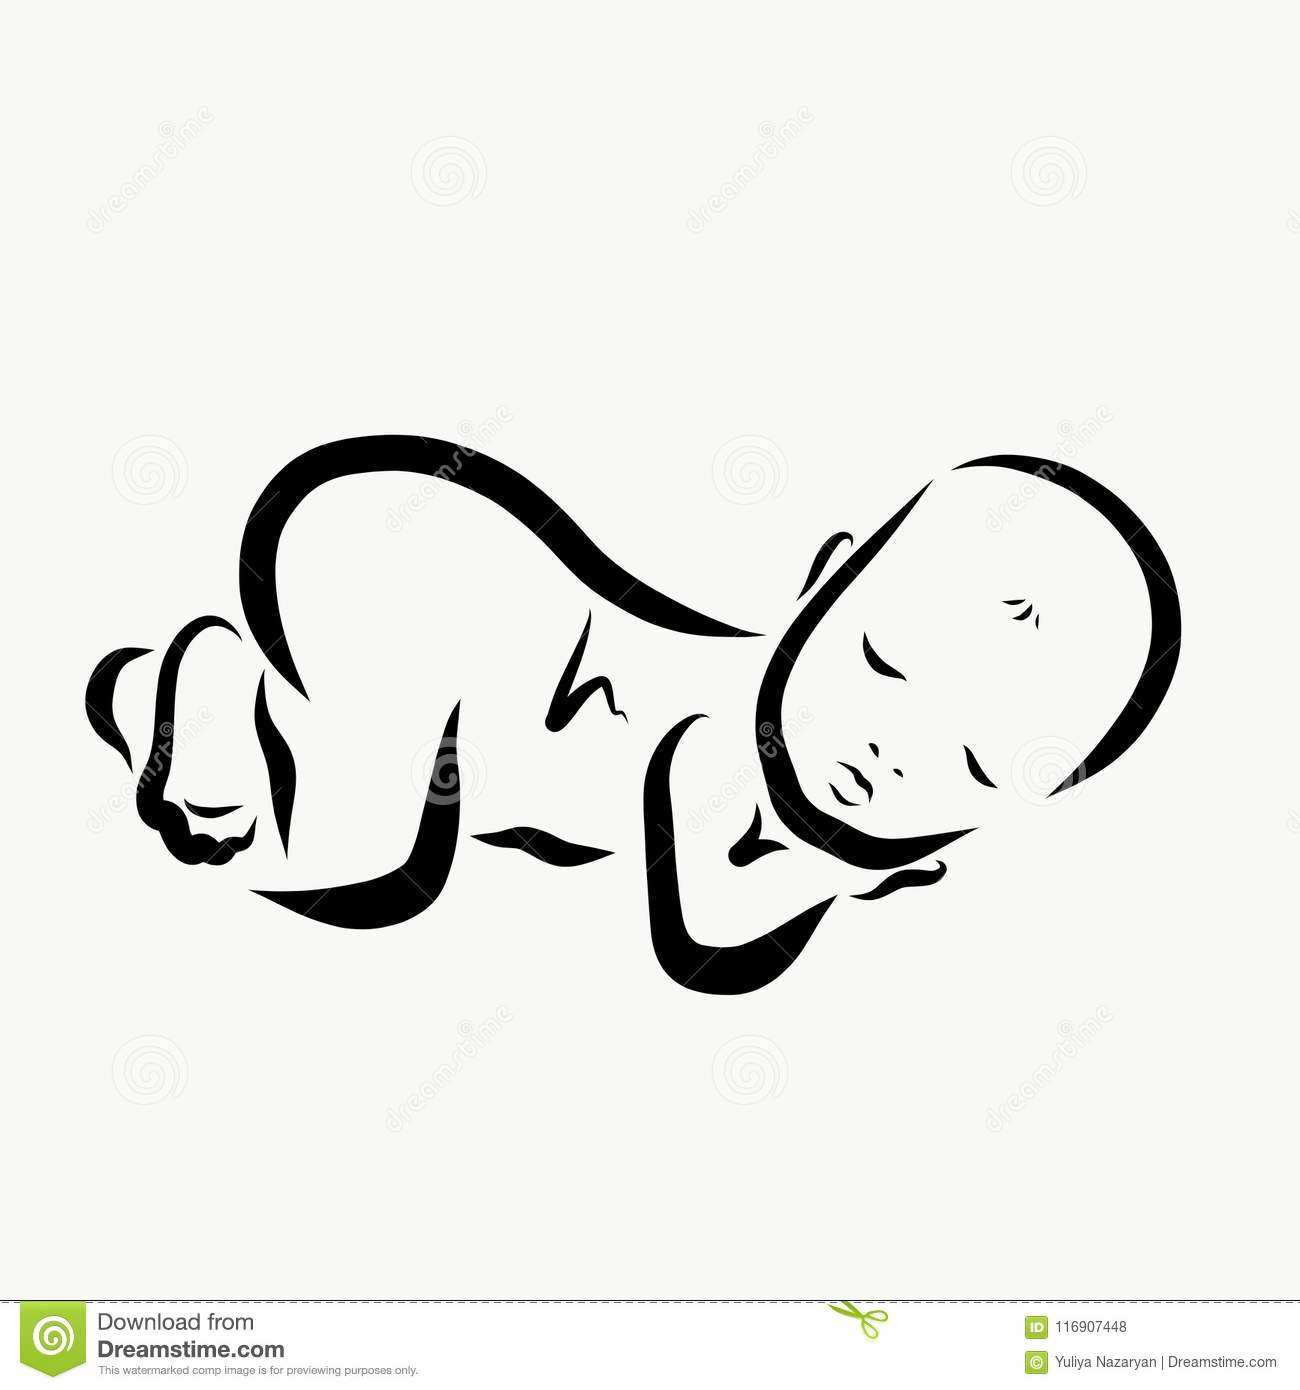 A Sleeping Newborn Baby A Black Sketch Stock Illustration